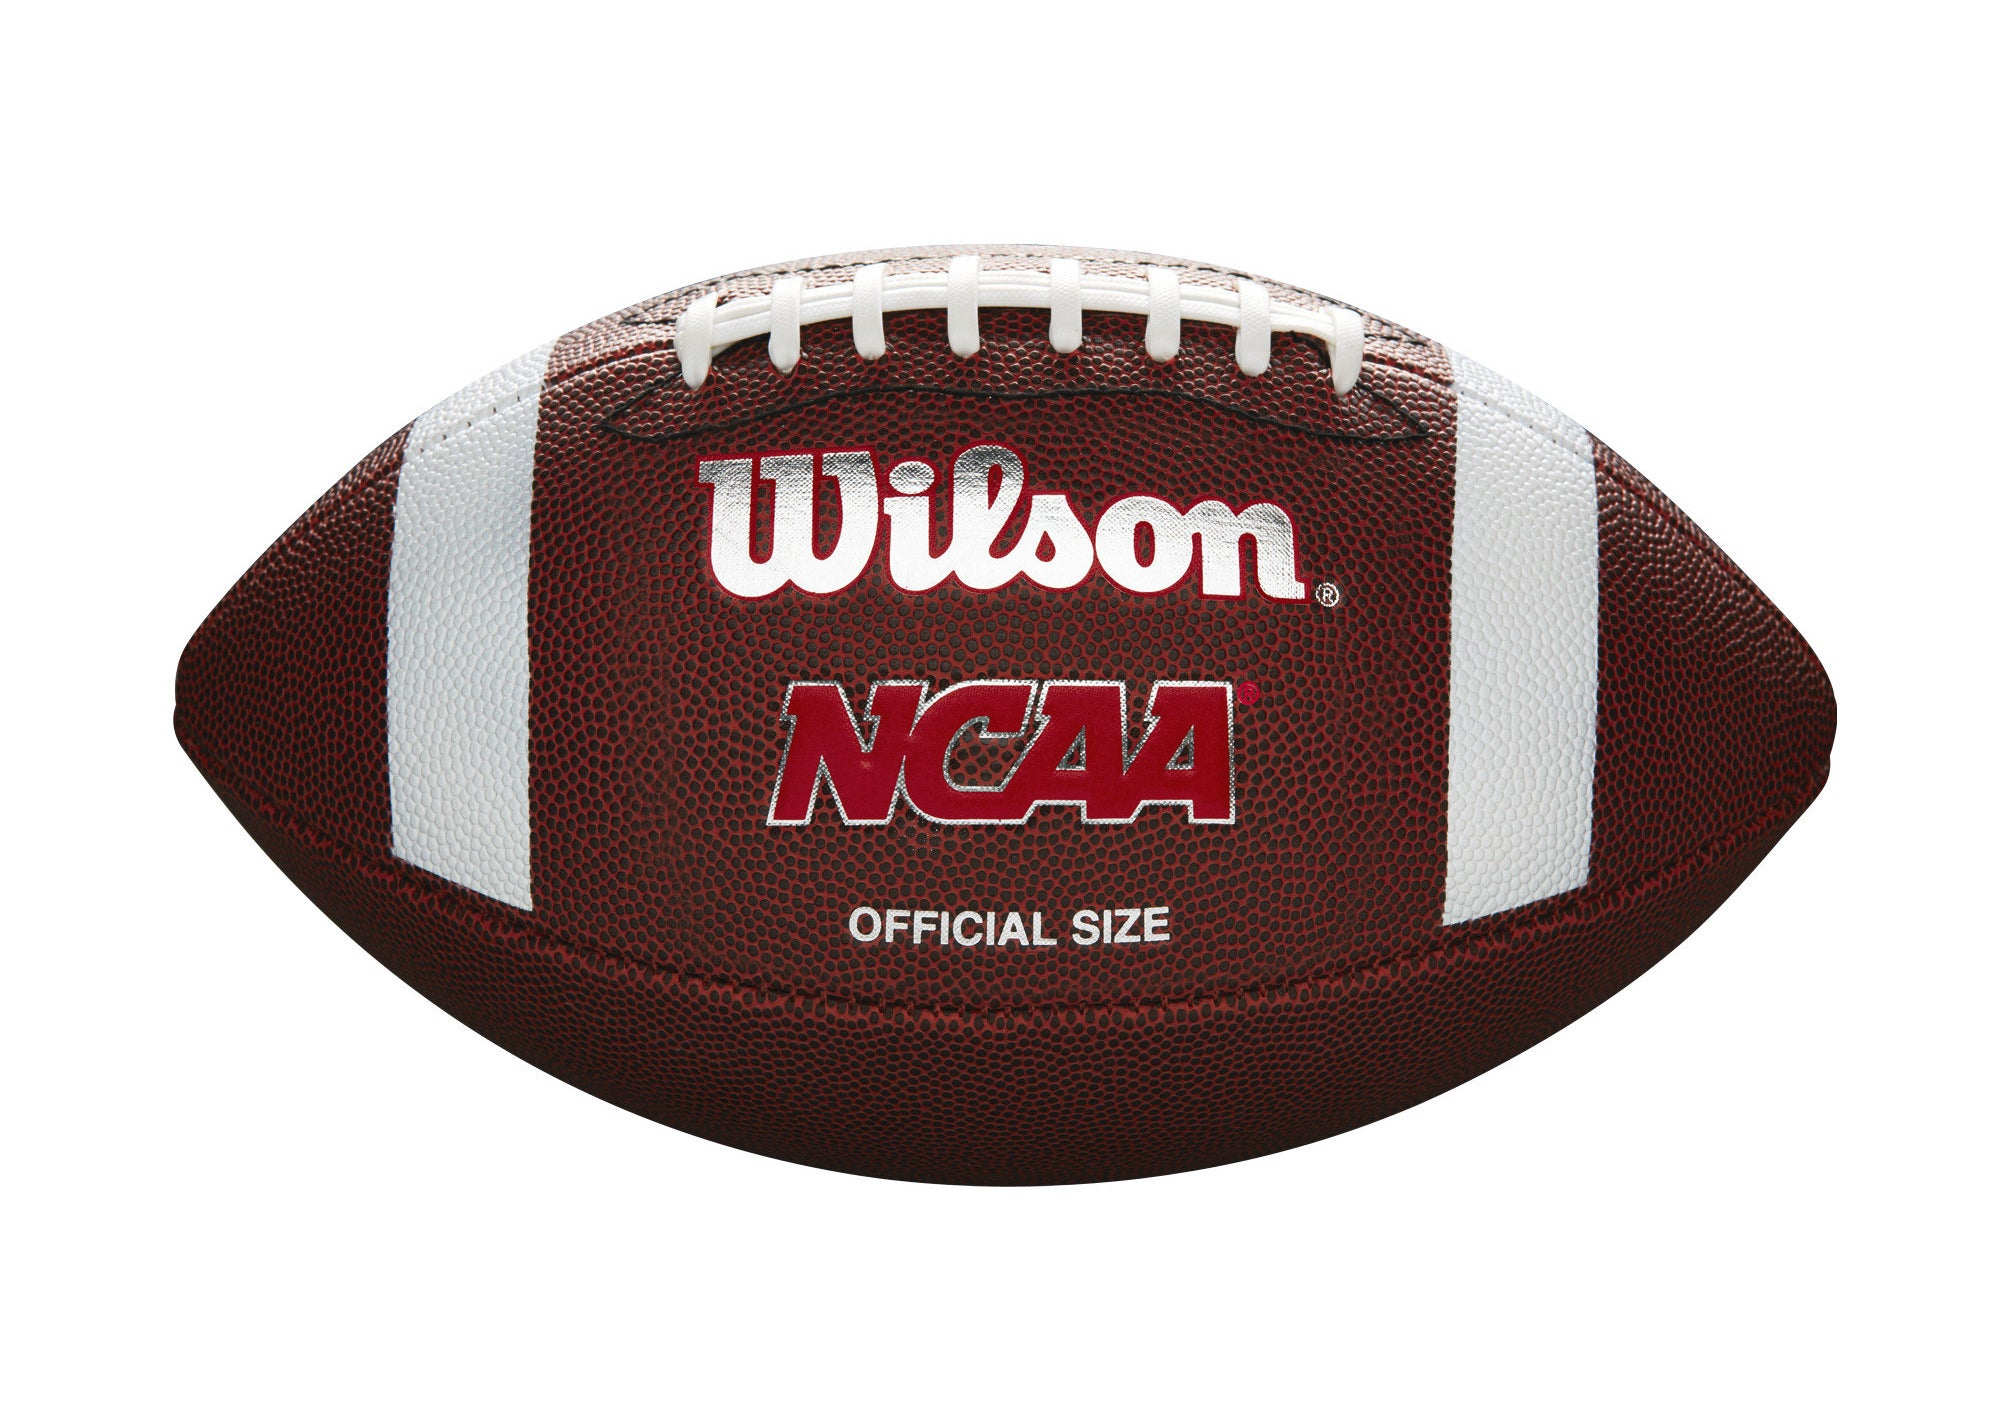 The brown football